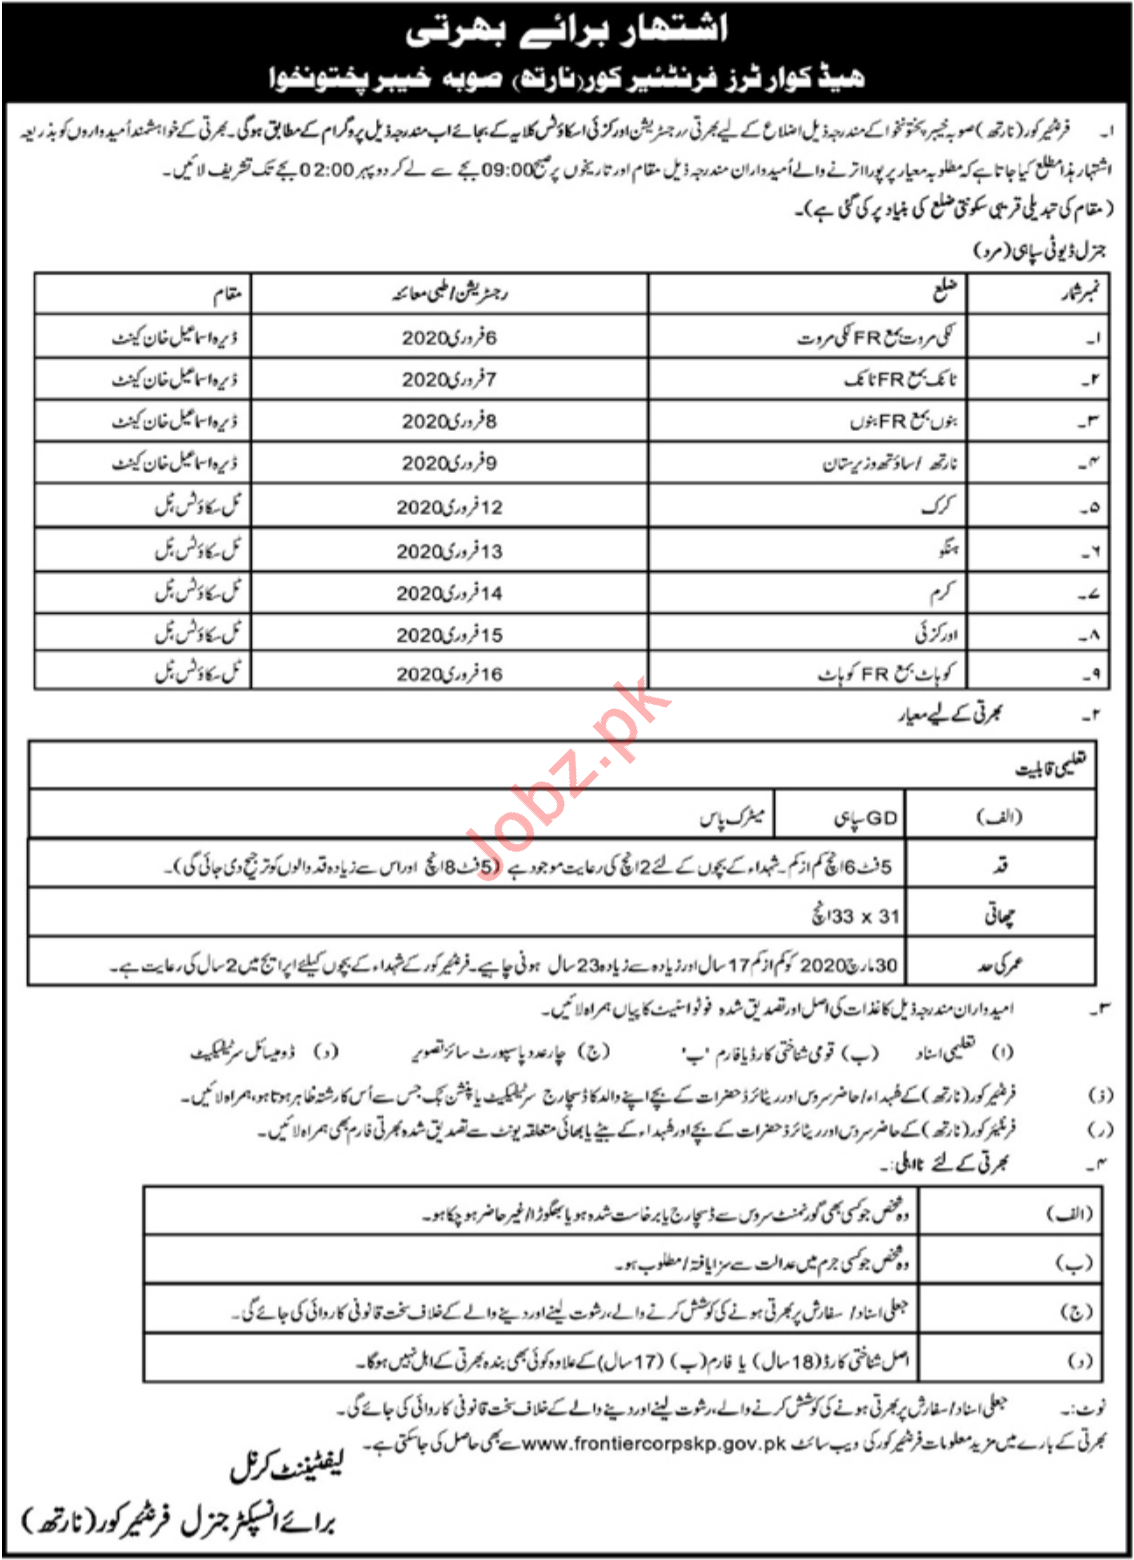 Headquarter Frontier Core North Khyber Pakhunkhwa Jobs 2020